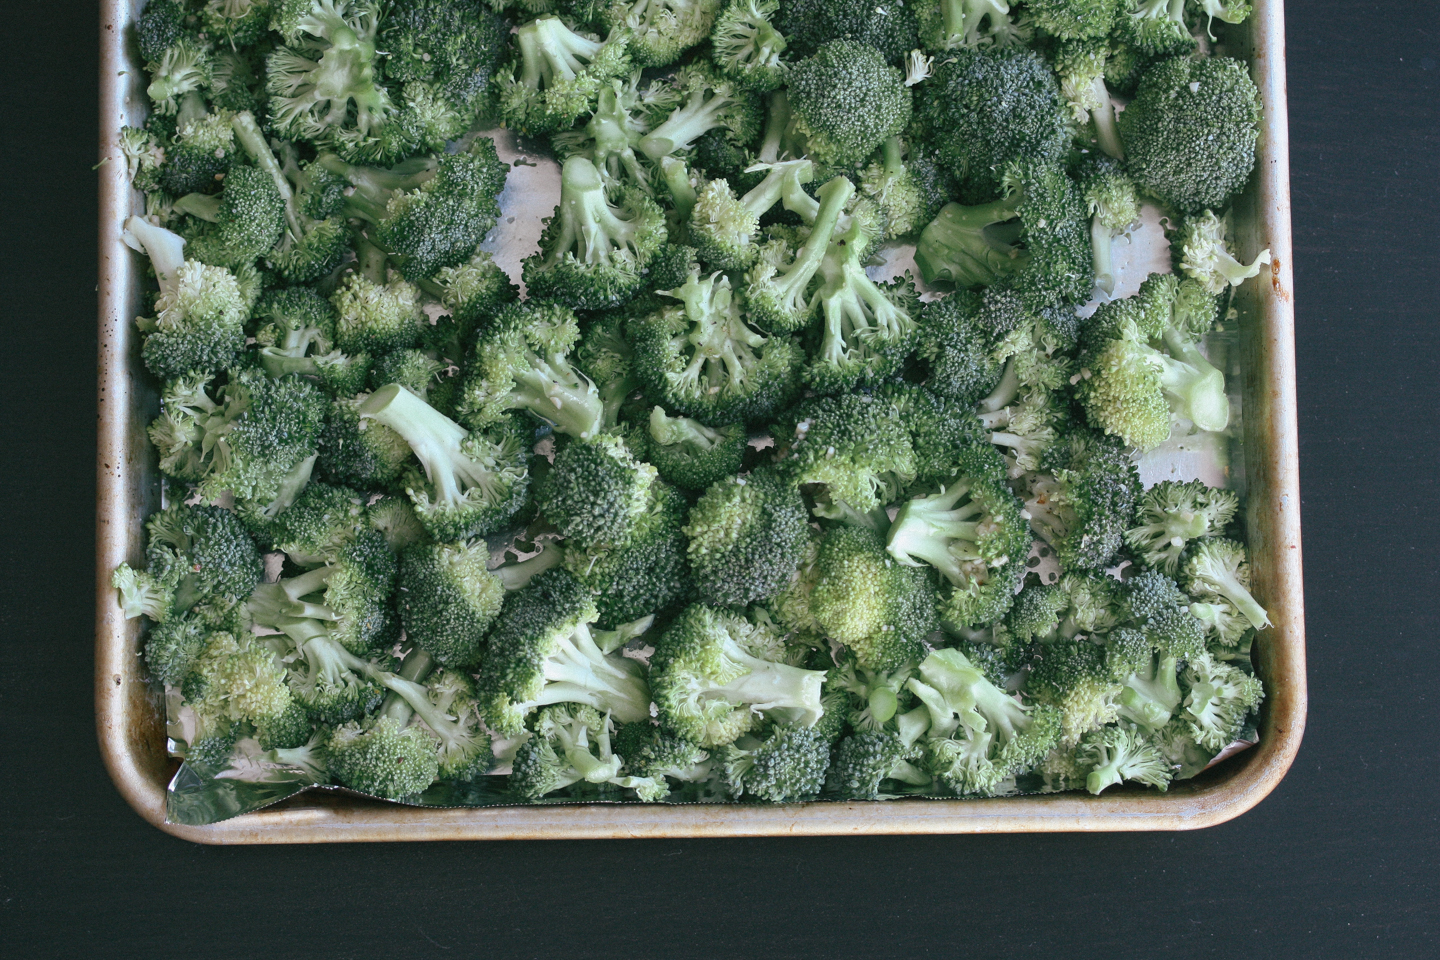 Roasted Broccoli with Parmesan Cheese & Lemon